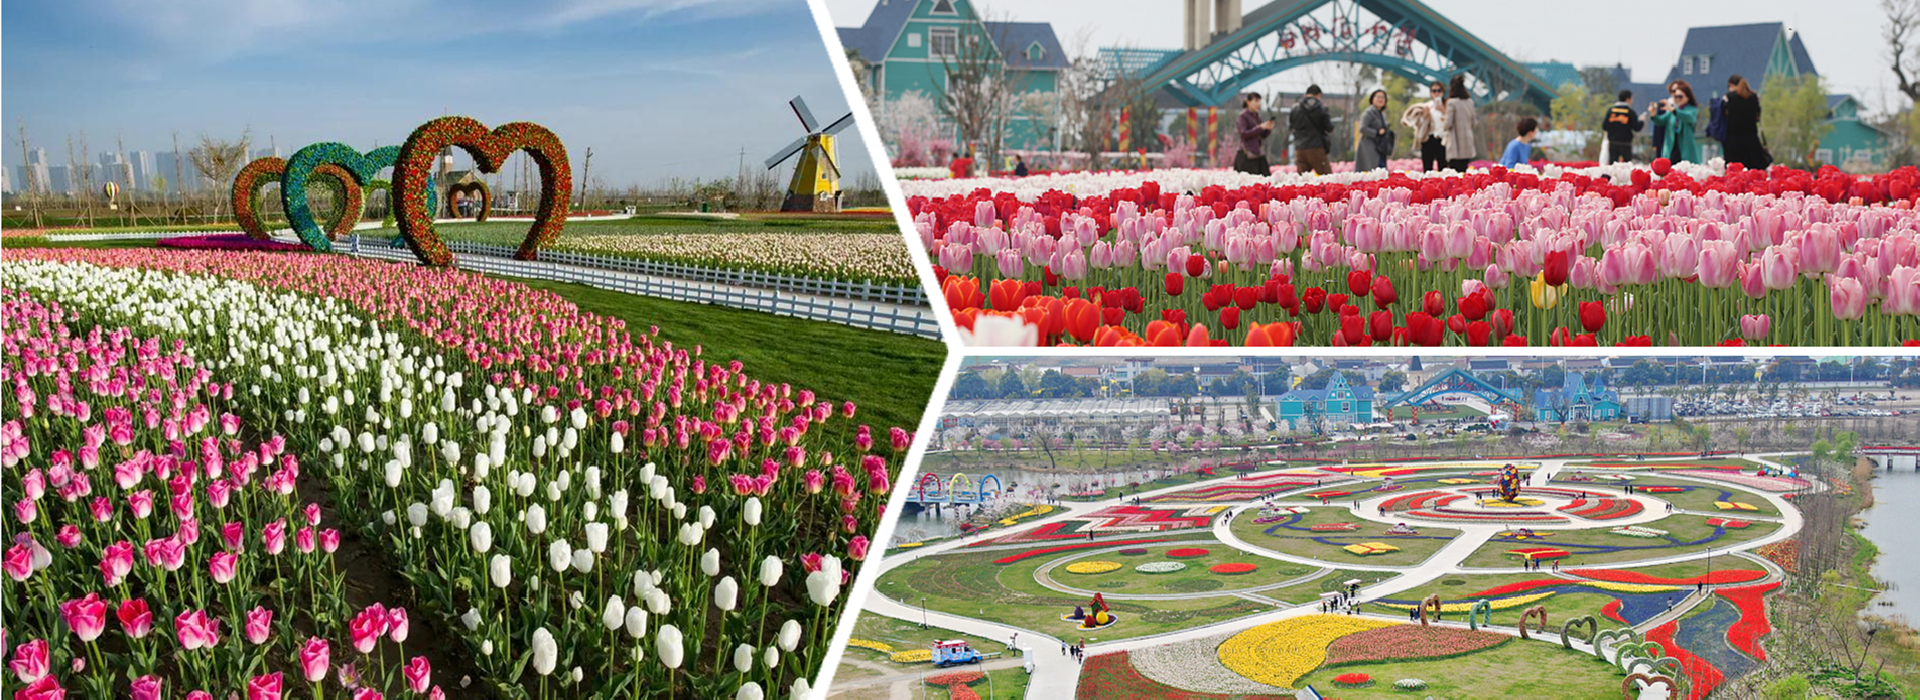 Have a date with spring in Tongzhou's Flower Town